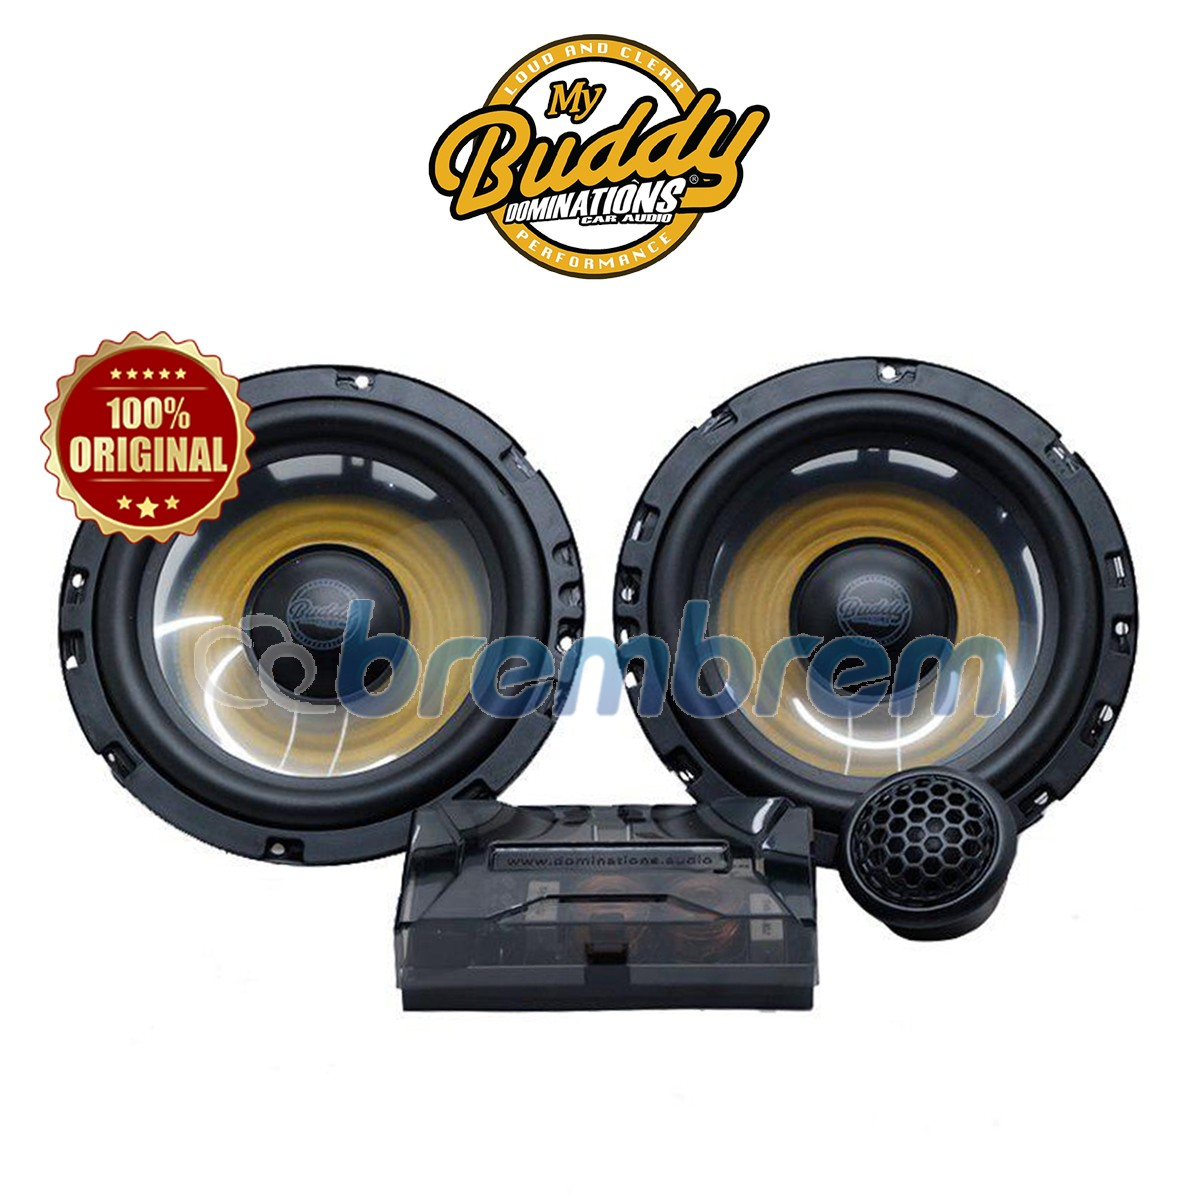 DOMINATIONS BUD 6B - SPEAKER 2 WAY